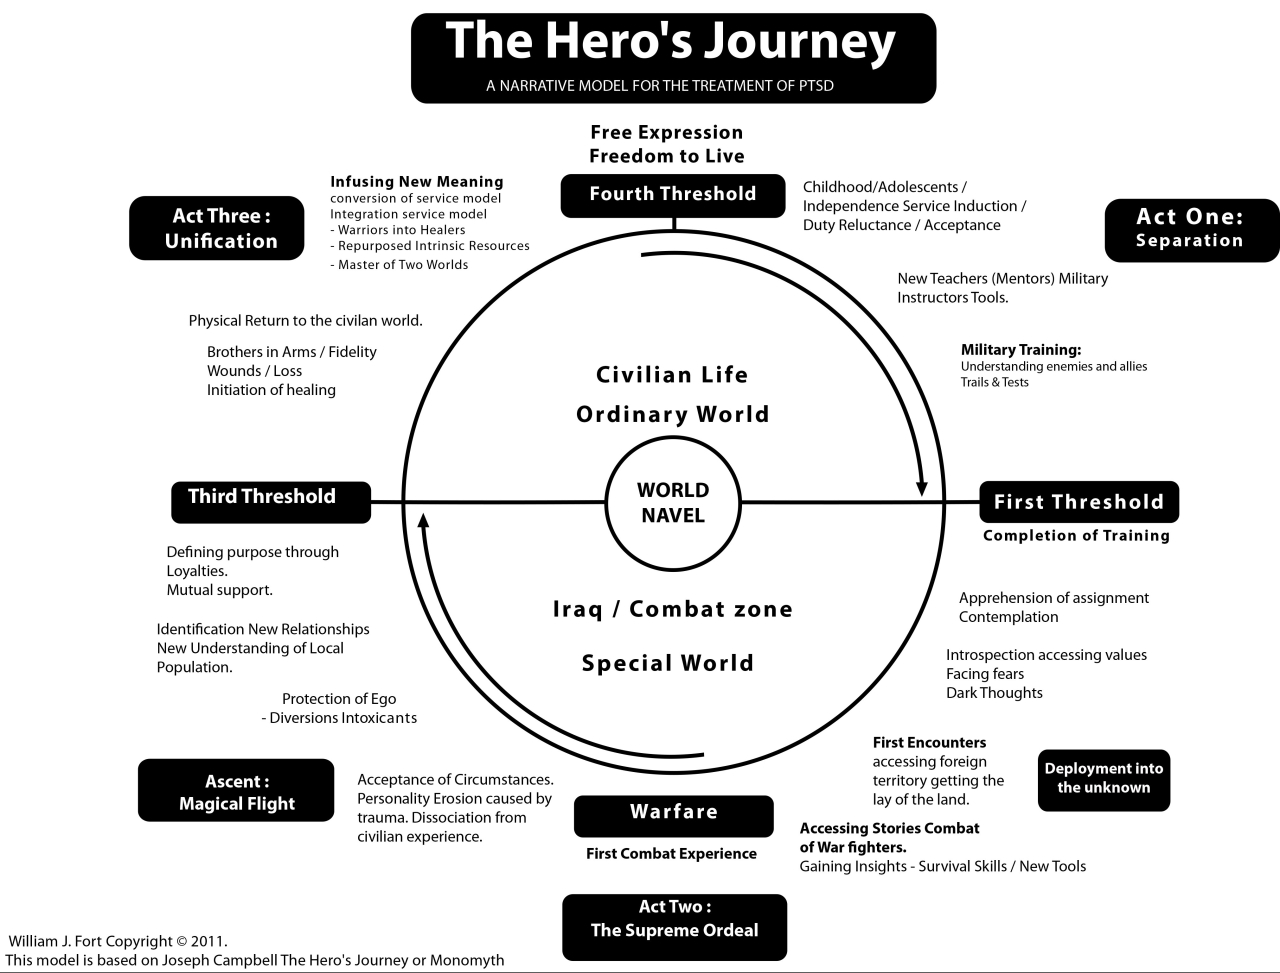 heroes journey essay Final project assignment for the hero's journey unit english i final due date: _____november 13, 2015 as always, this assignment consists of an essay component, a visual component, and a presentation.